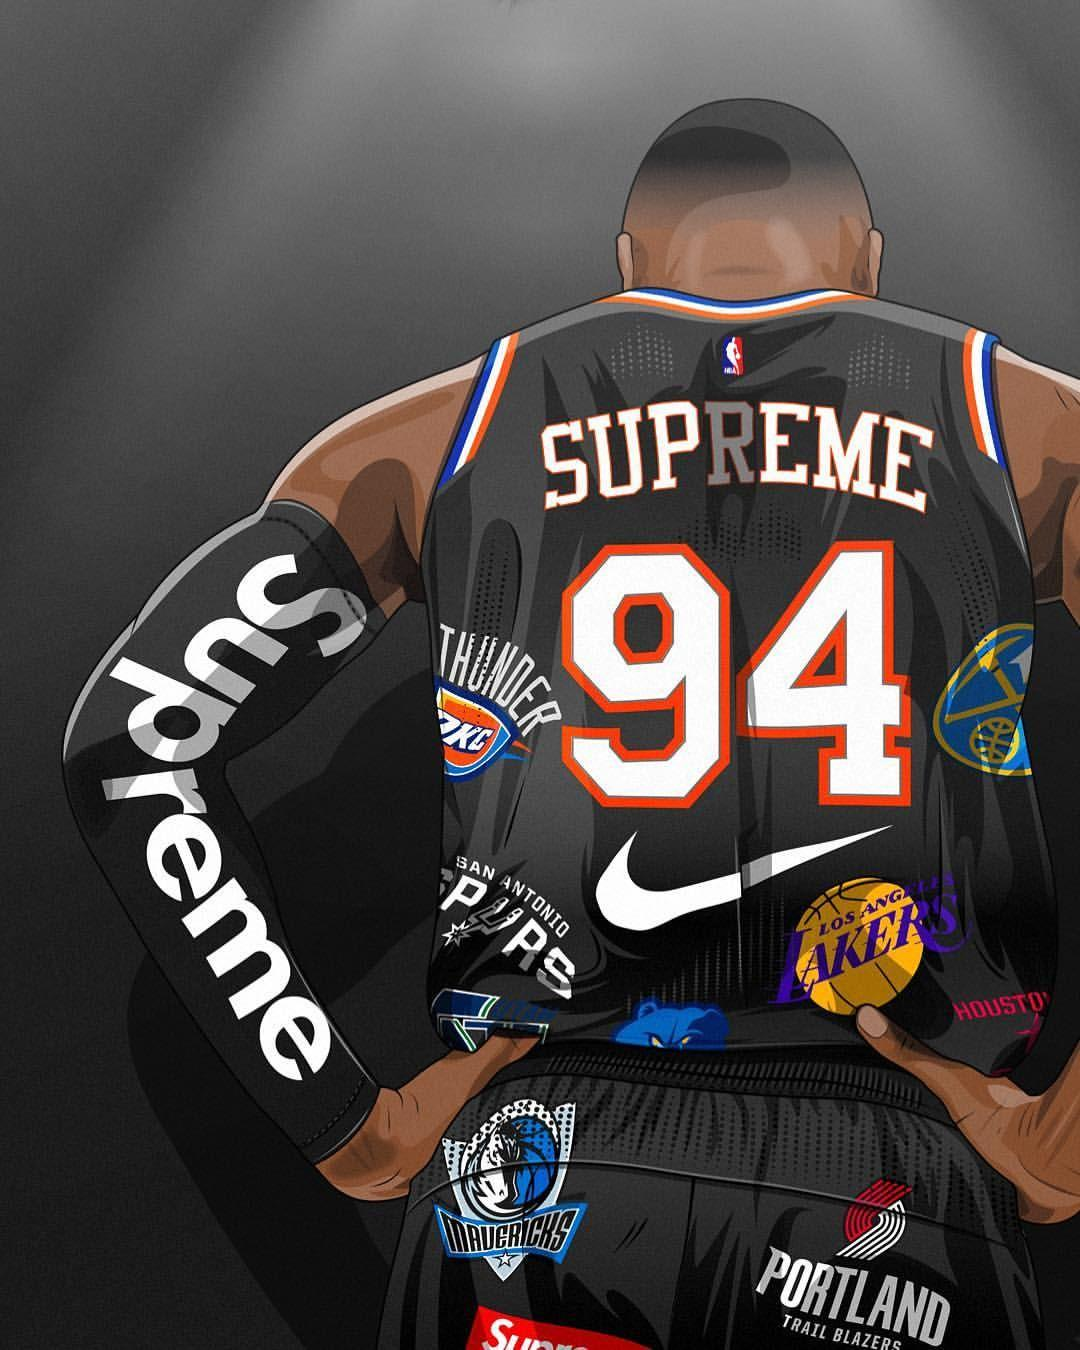 Supreme Basketball Wallpapers Wallpaper Cave